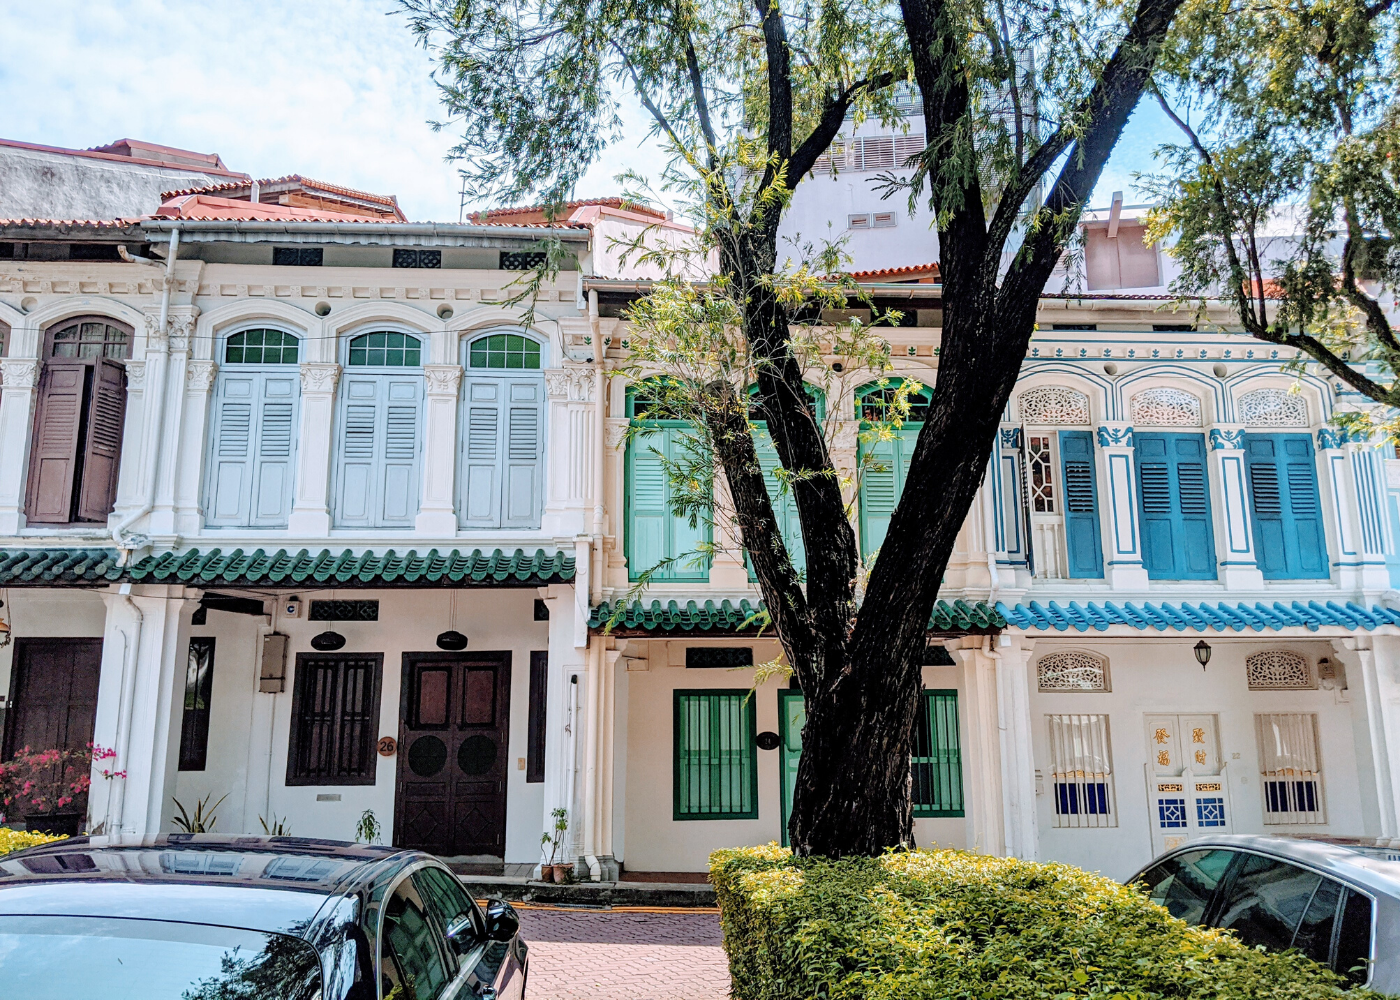 Peranakan shophouses in Singapore | Guide to Emerald Hill